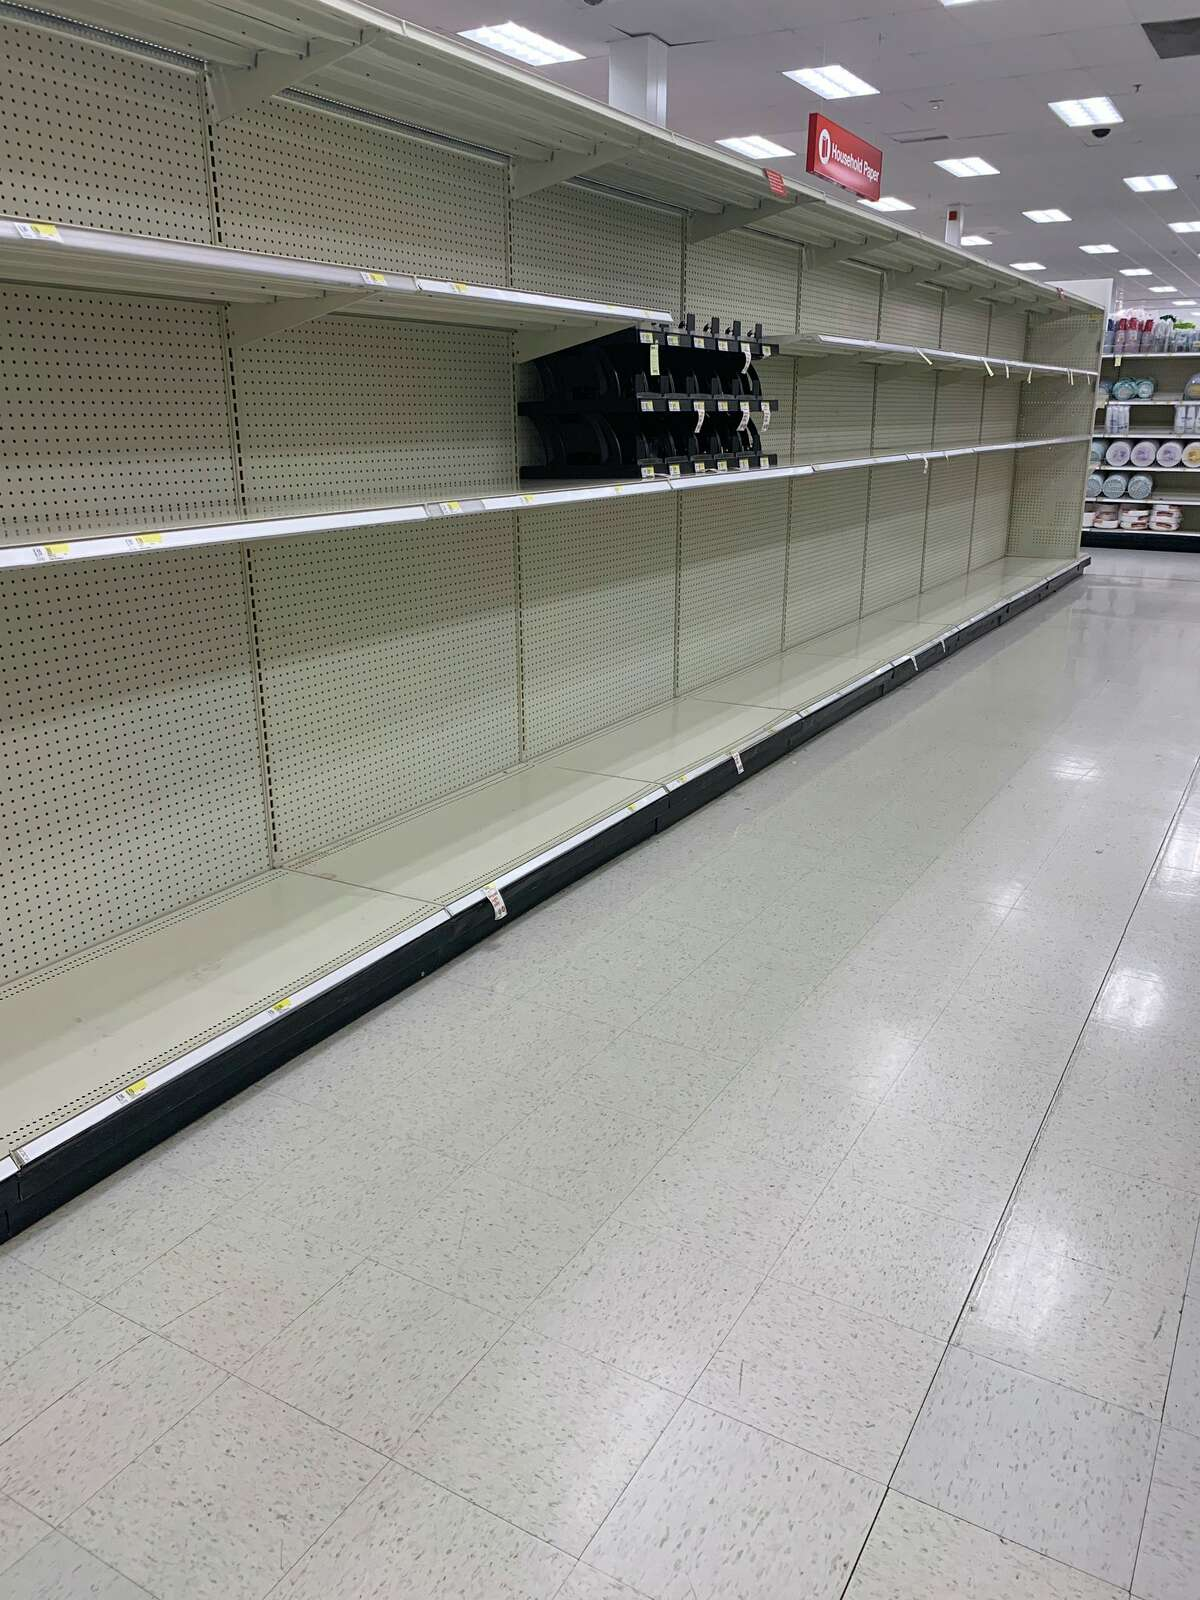 The toilet paper aisle at Target in Colonie, N.Y. on Thursday, March 12, 2020.